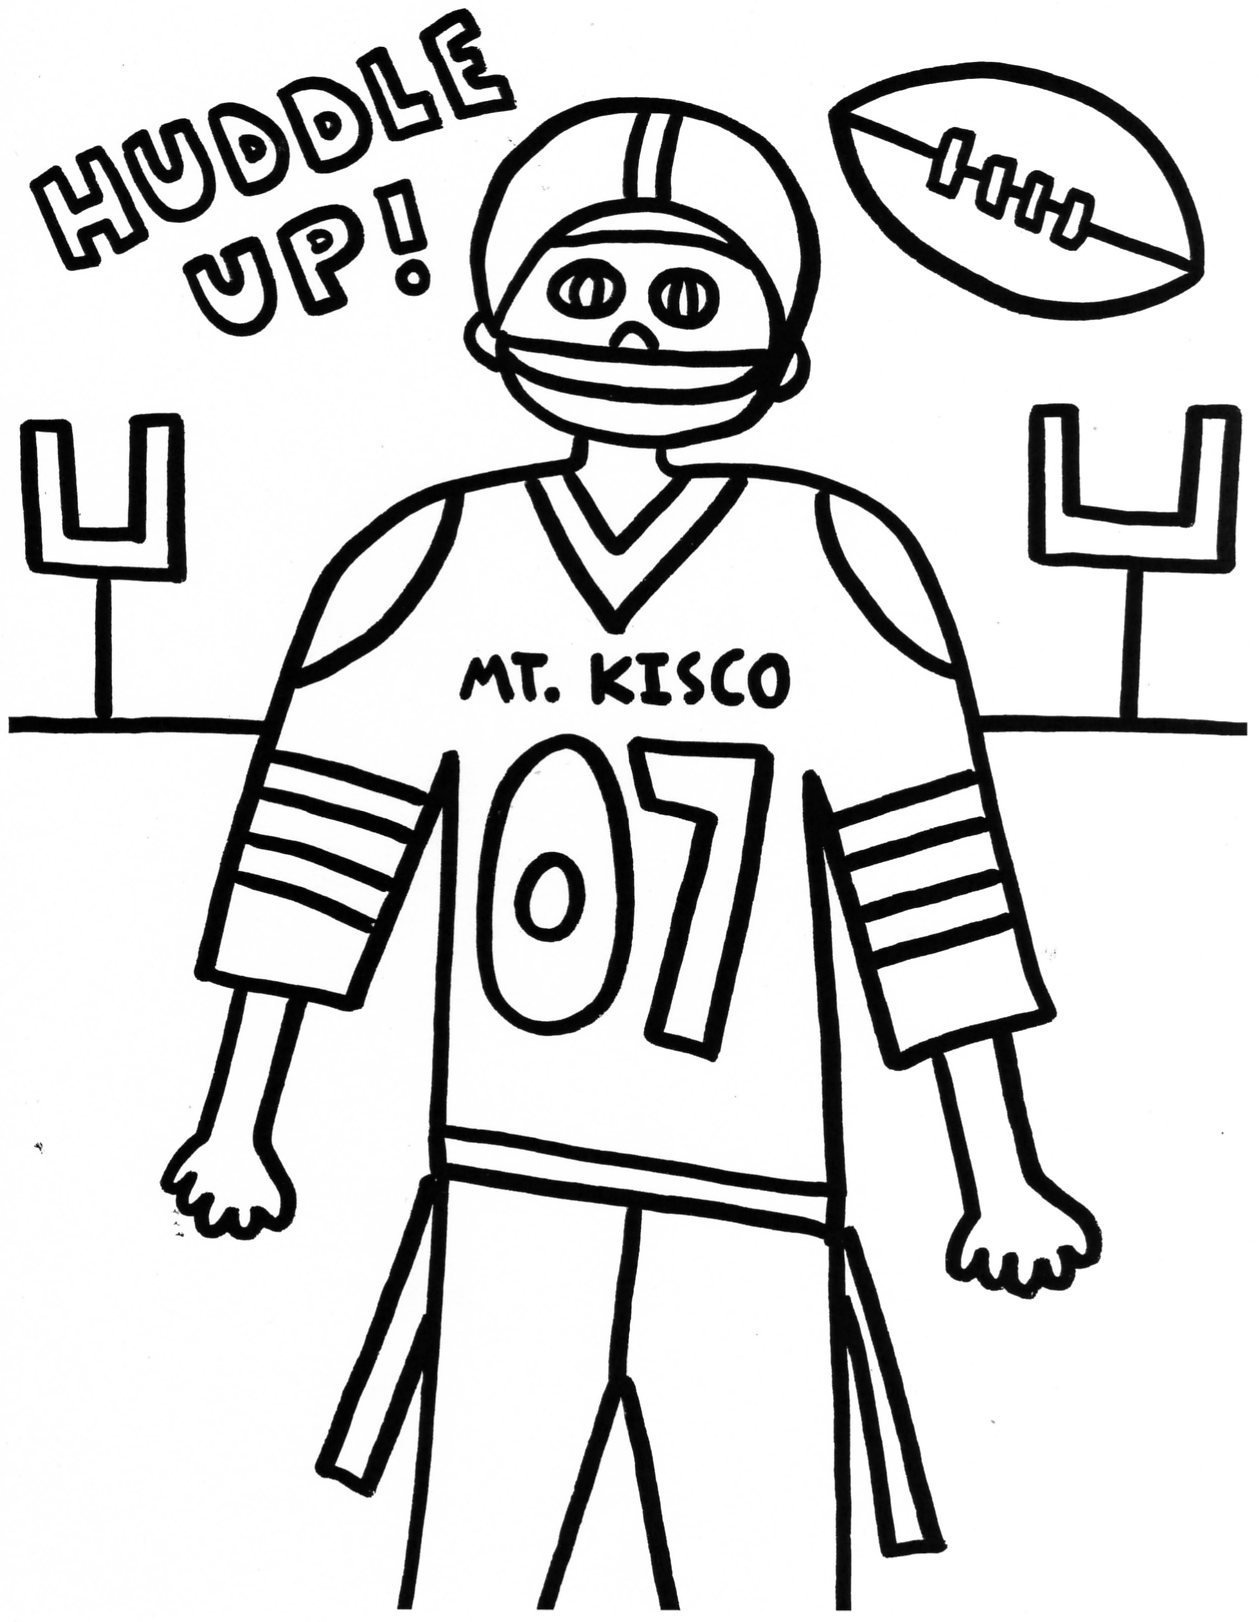 Kd 8 coloring pages - Bgc Coloring Sheet Collection 07 08